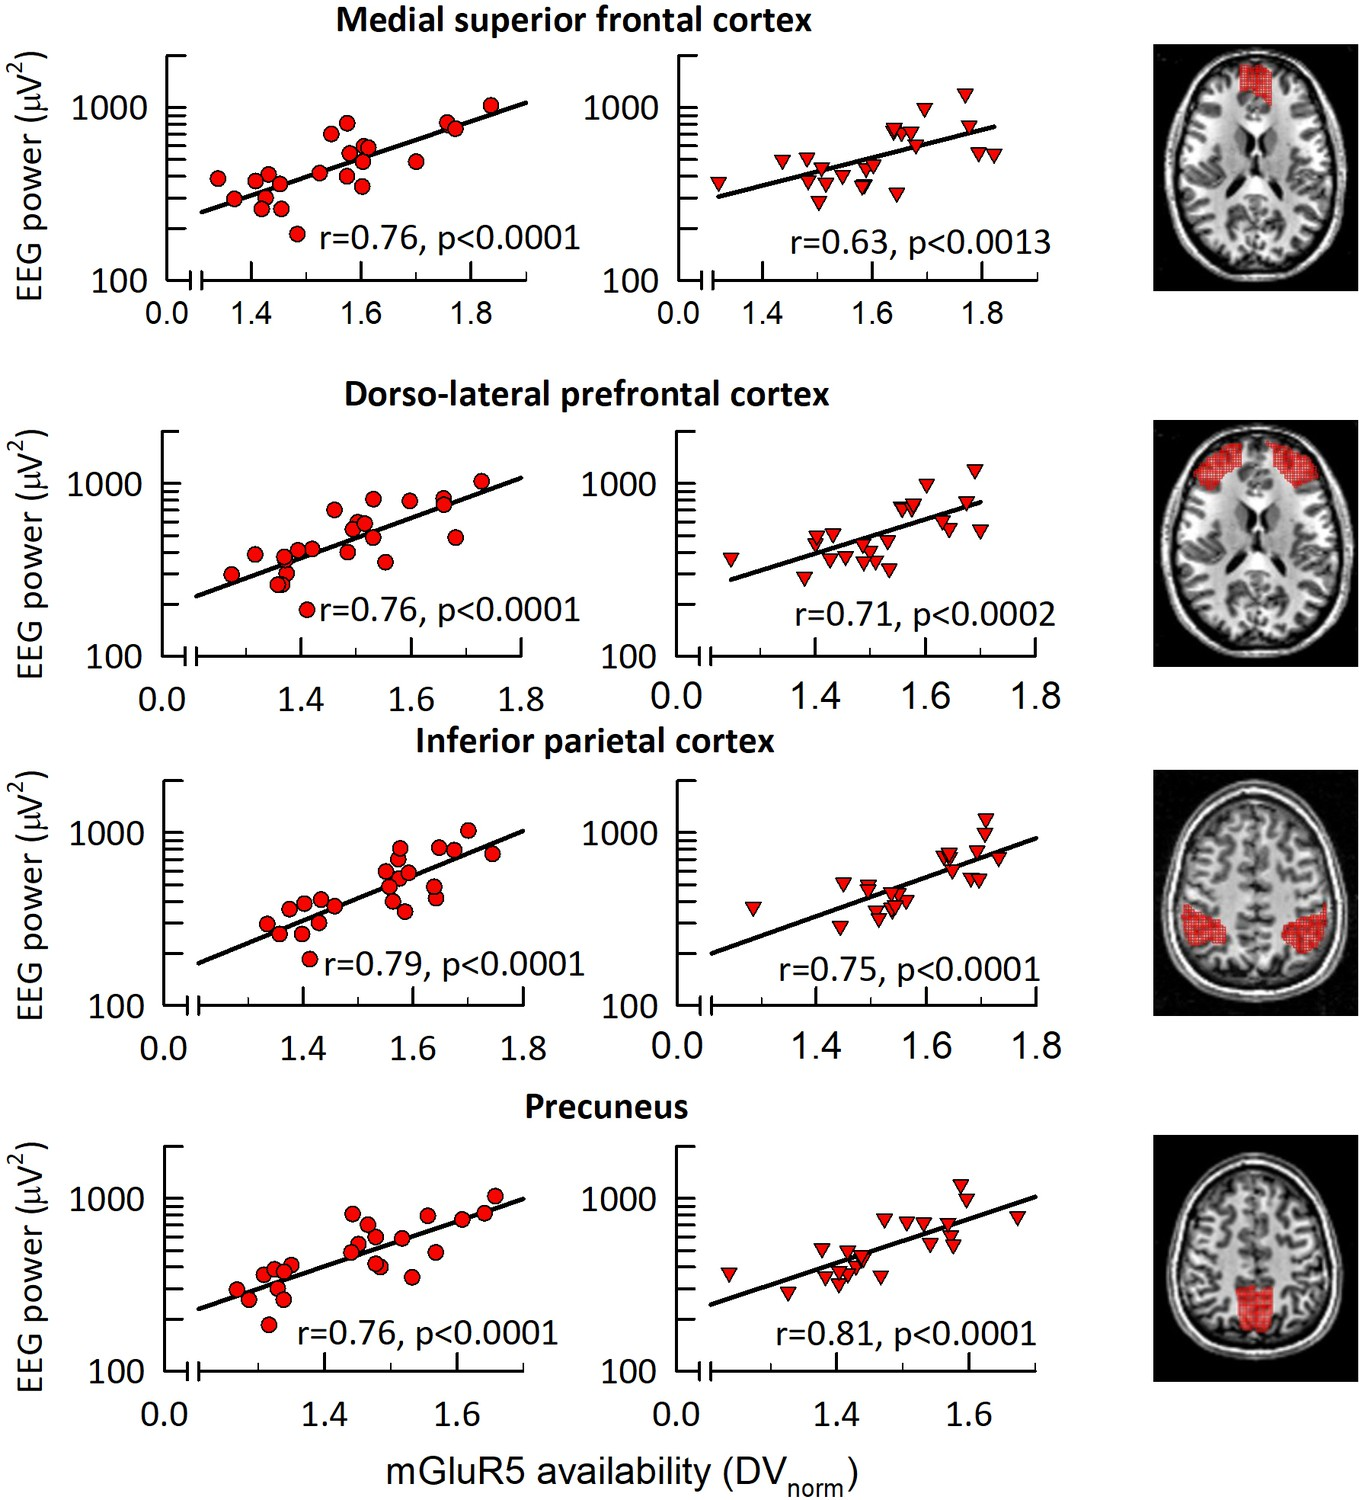 Cerebral Mglur5 Availability Contributes To Elevated Sleep Need And 12 Lead Motor Delta Run Wiring Diagram In Fronto Parietal Network Correlates With Eeg 1 Hz Activity Nrem